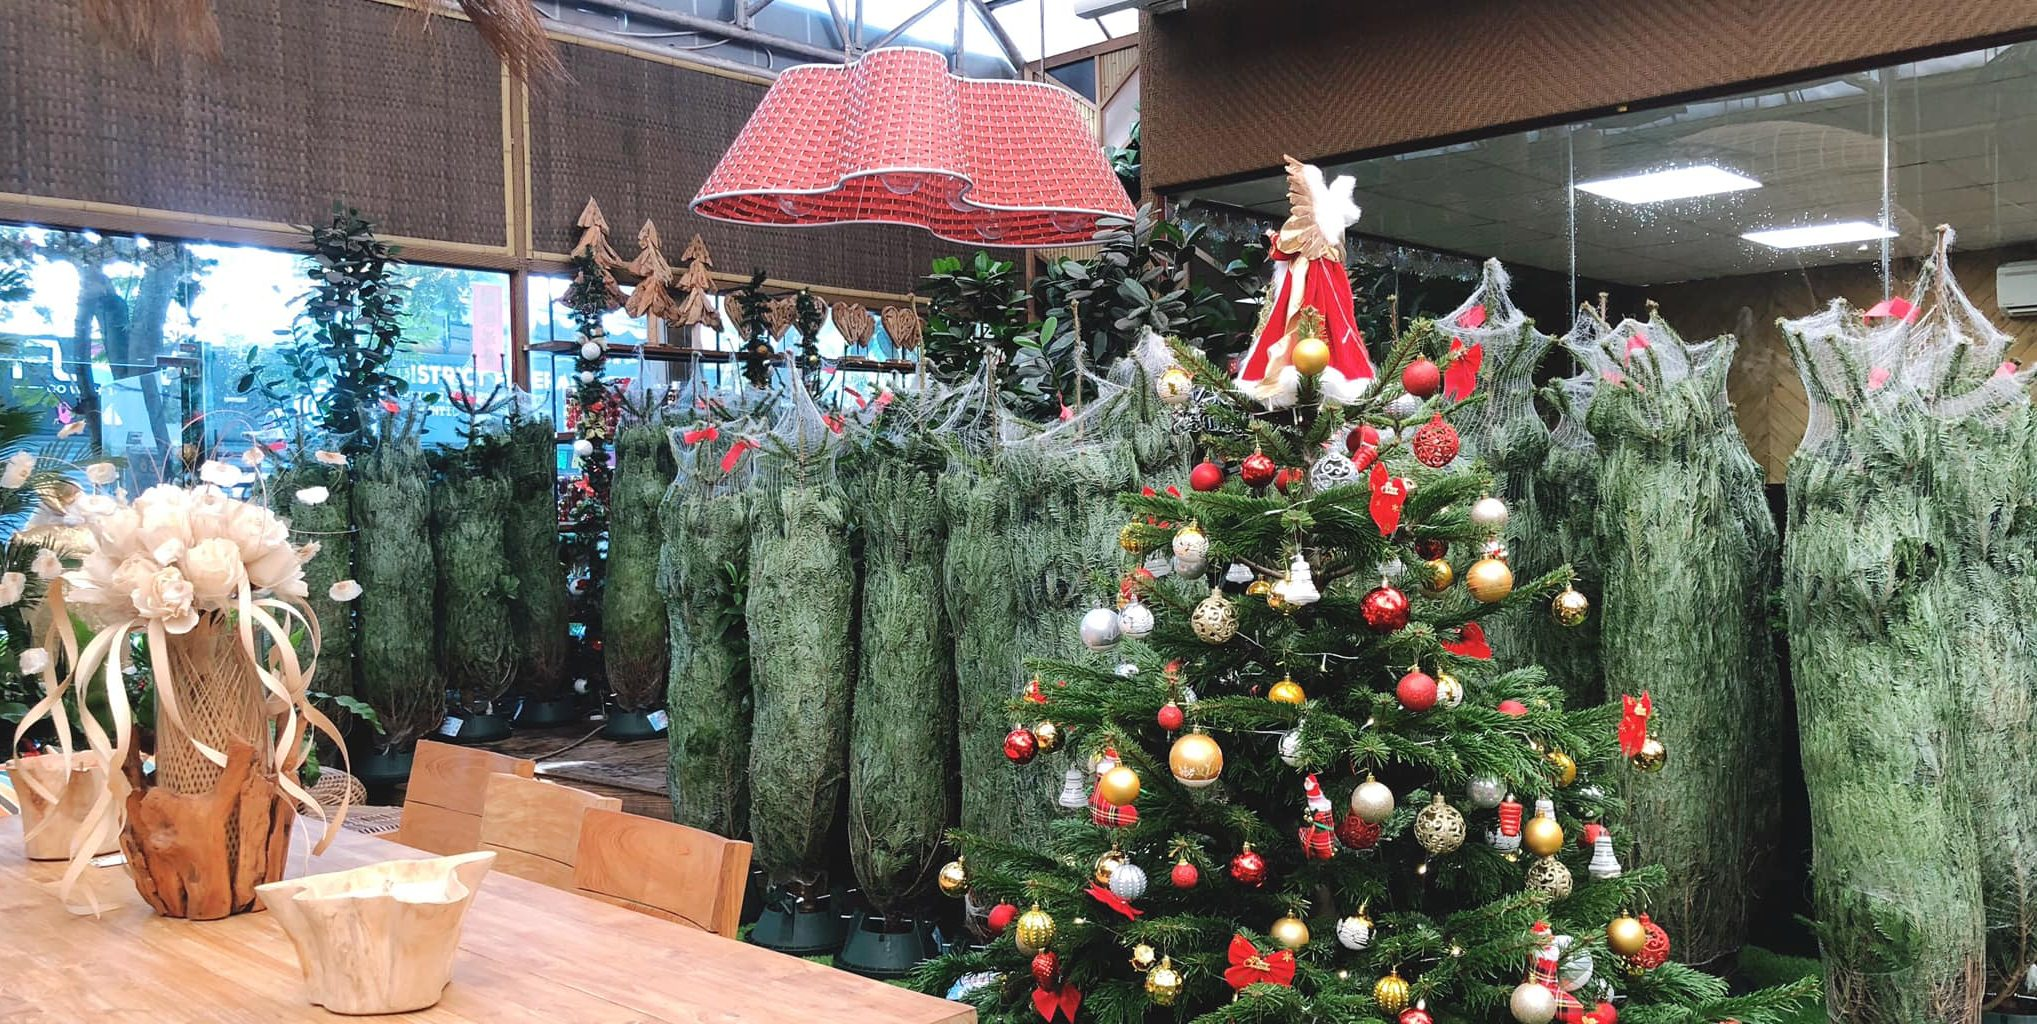 Christmas Vietnam, christmas Saigon, Christmas dinner, Christmas trees Saigon, where to buy real Christmas trees Ho Chi Minh City, cooking christmas dinner, Christmas recipes, christmas decorations Saigon, christmas decor